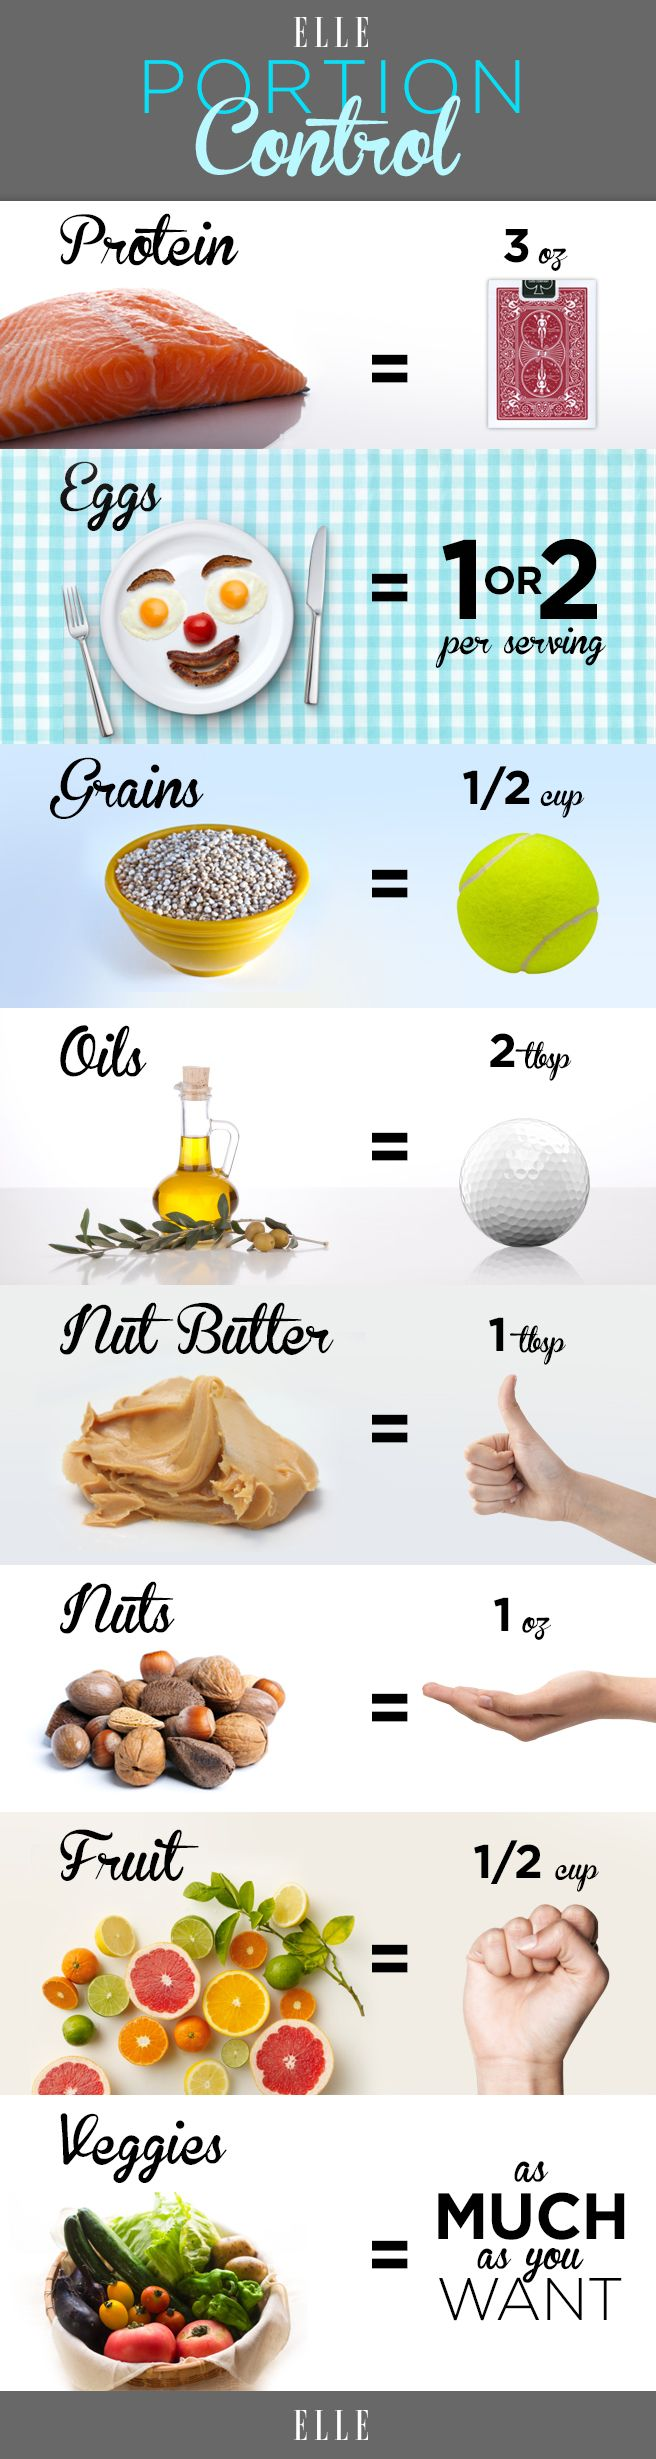 A Visual Guide to Portion Control - What is a Serving Size